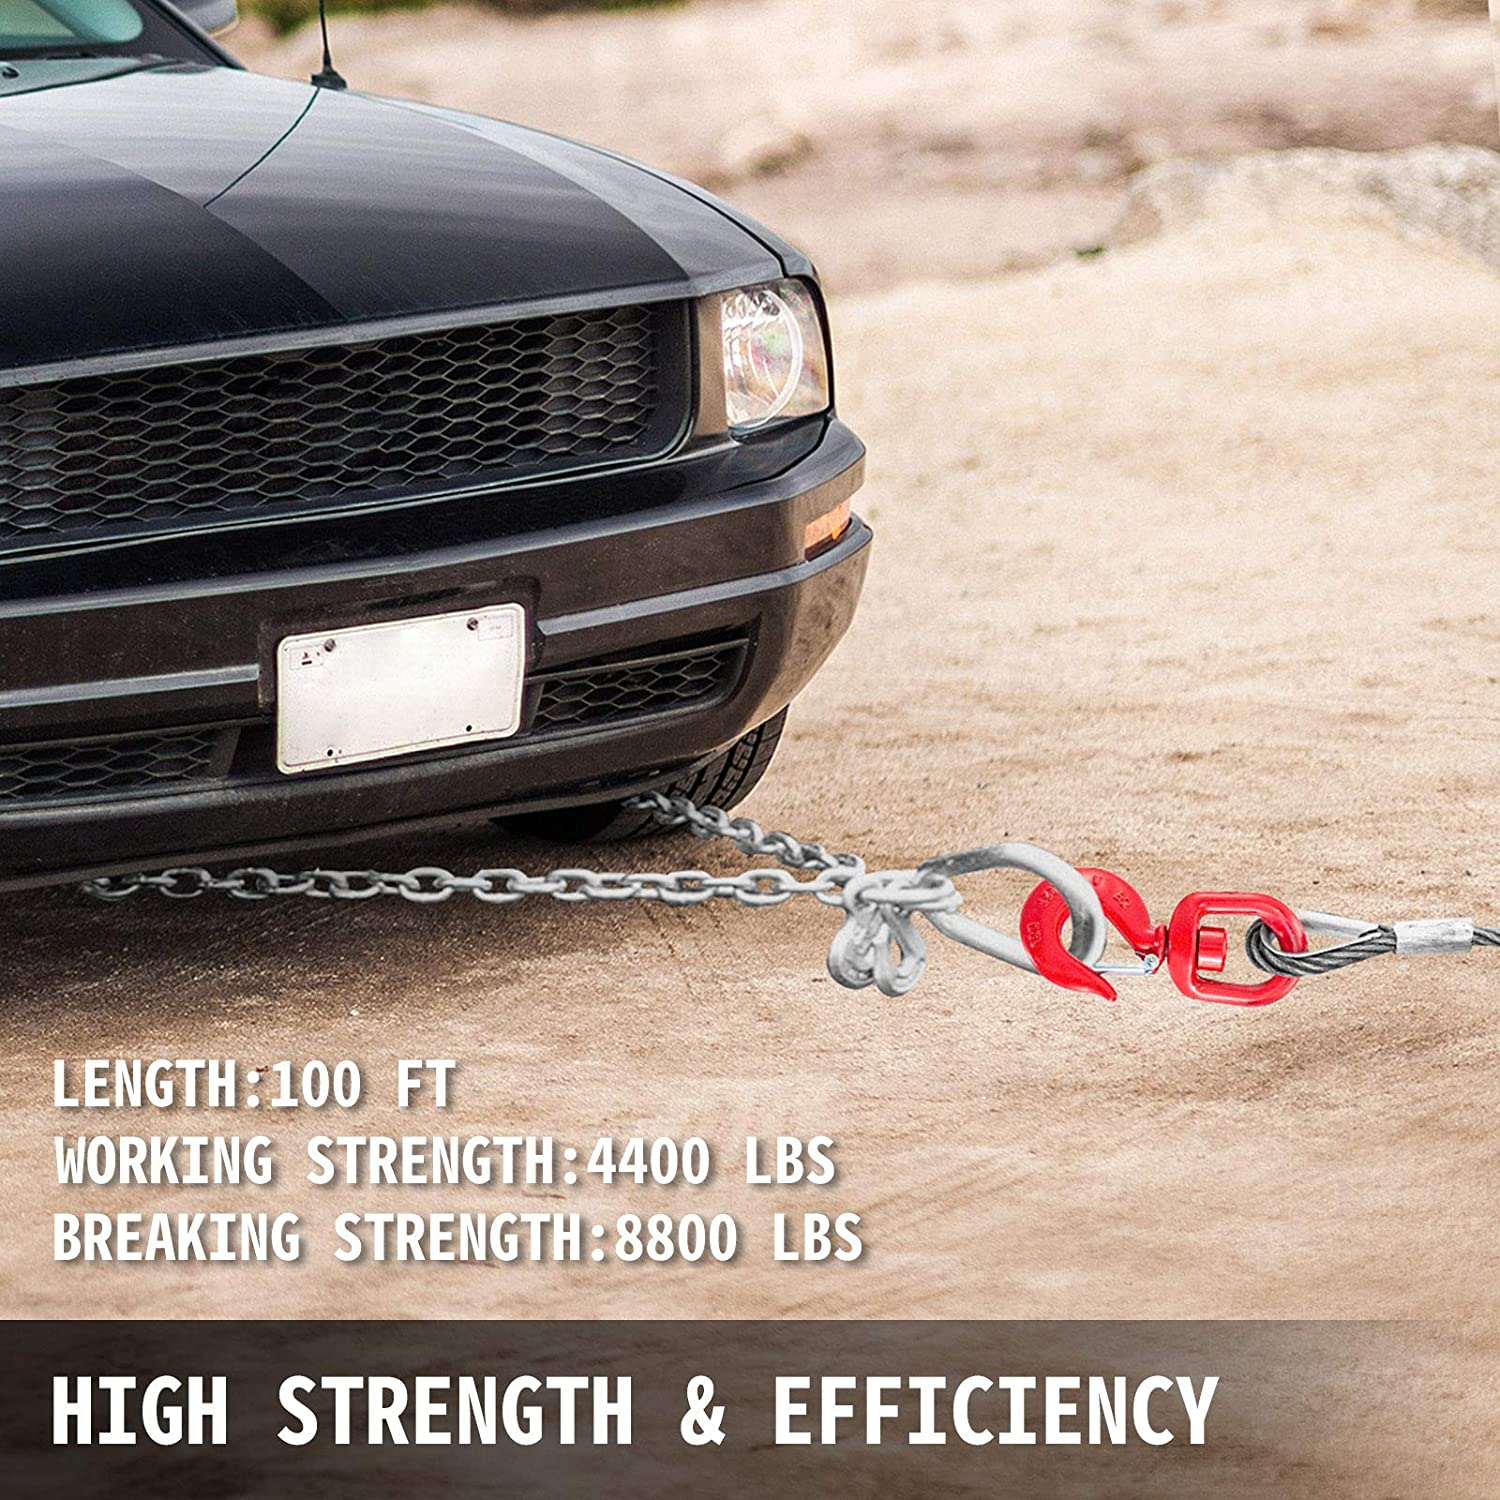 BestEquip Galvanized Steel Winch Cable 3//8 x 100 for Rollback 6x19 Strand Core Towing Cable Heavy Duty Crane Wrecker Tow Truck Wire Rope with Hook 8800 Lbs Breaking Strength